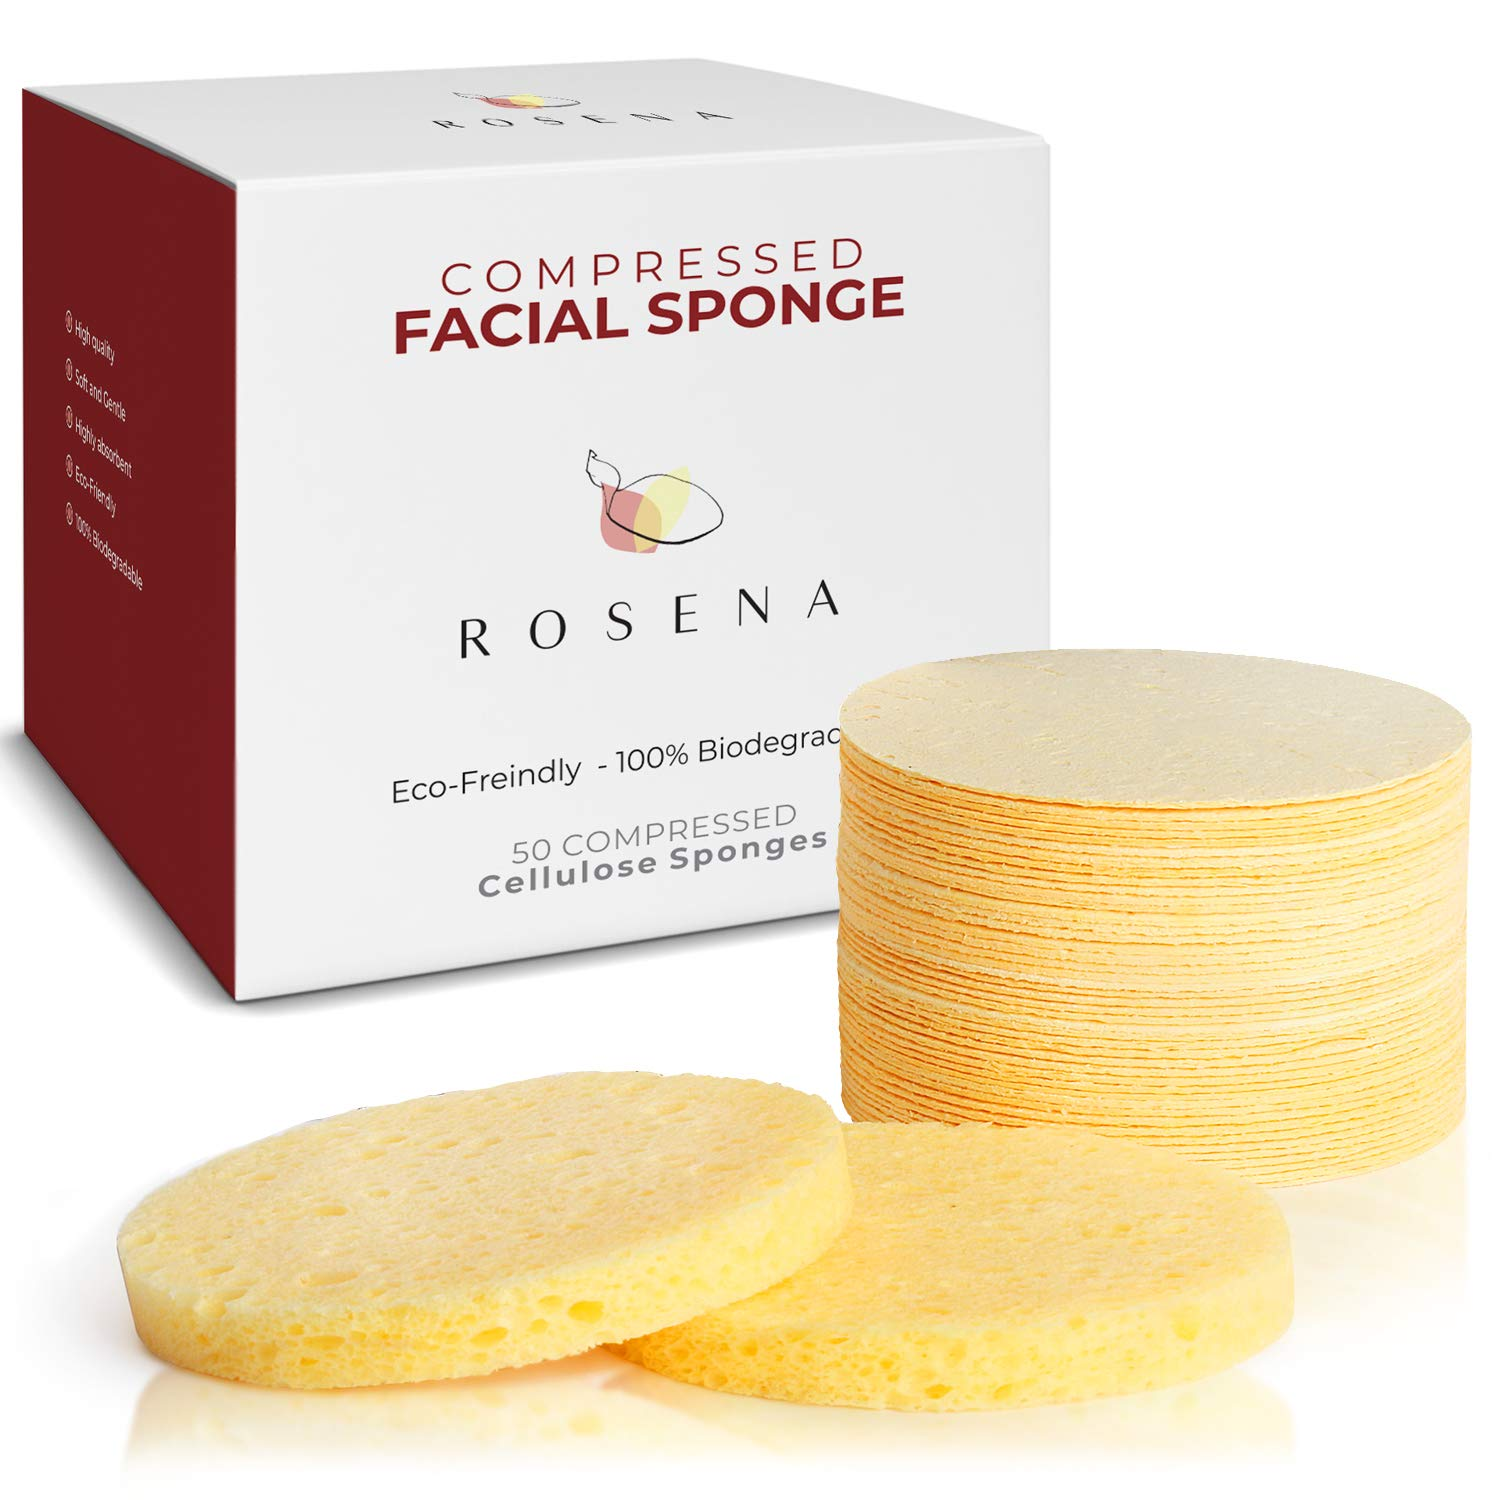 Amazon Com Facial Sponges 50 Count Compressed Cellulose Face Cleansing And Exfoliating Sponges Reusable Makeup Mask Remover Round Face Cleaning Sponge Pads Beauty